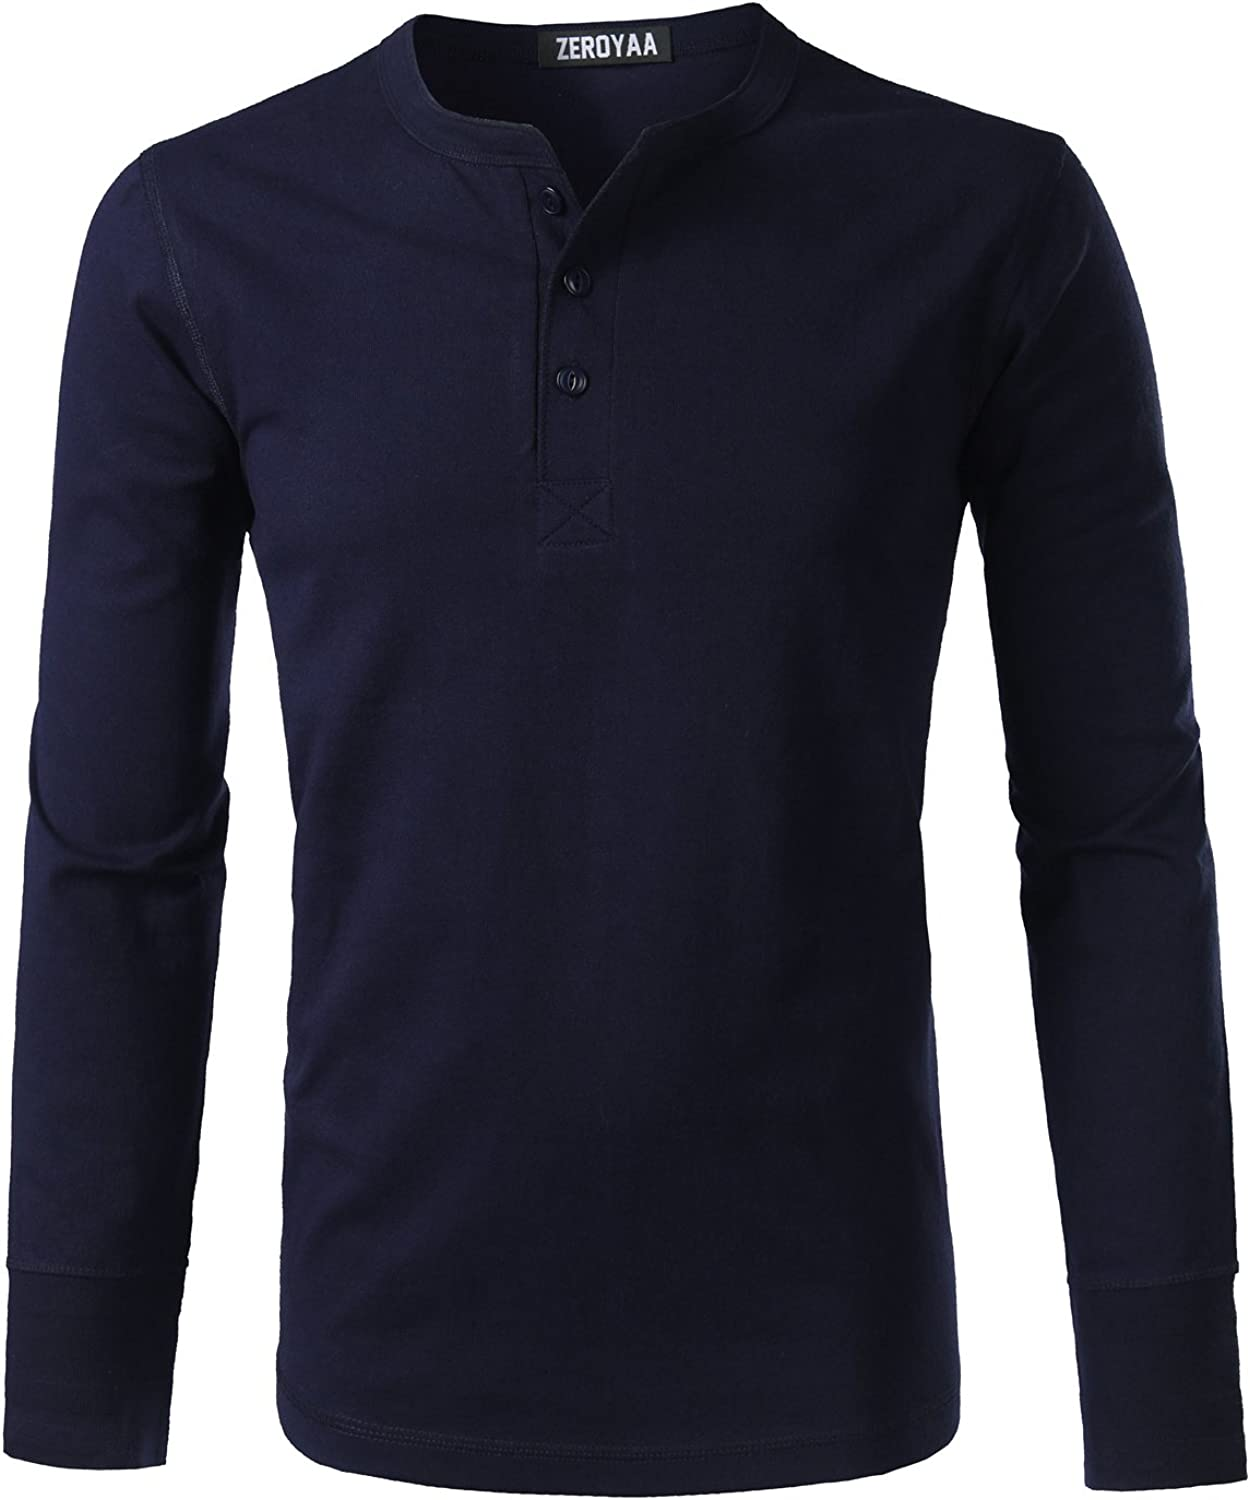 Mens Casual Heavyweight Basic 3 Button Henley Slim Fit V Neck T Shirts Tops